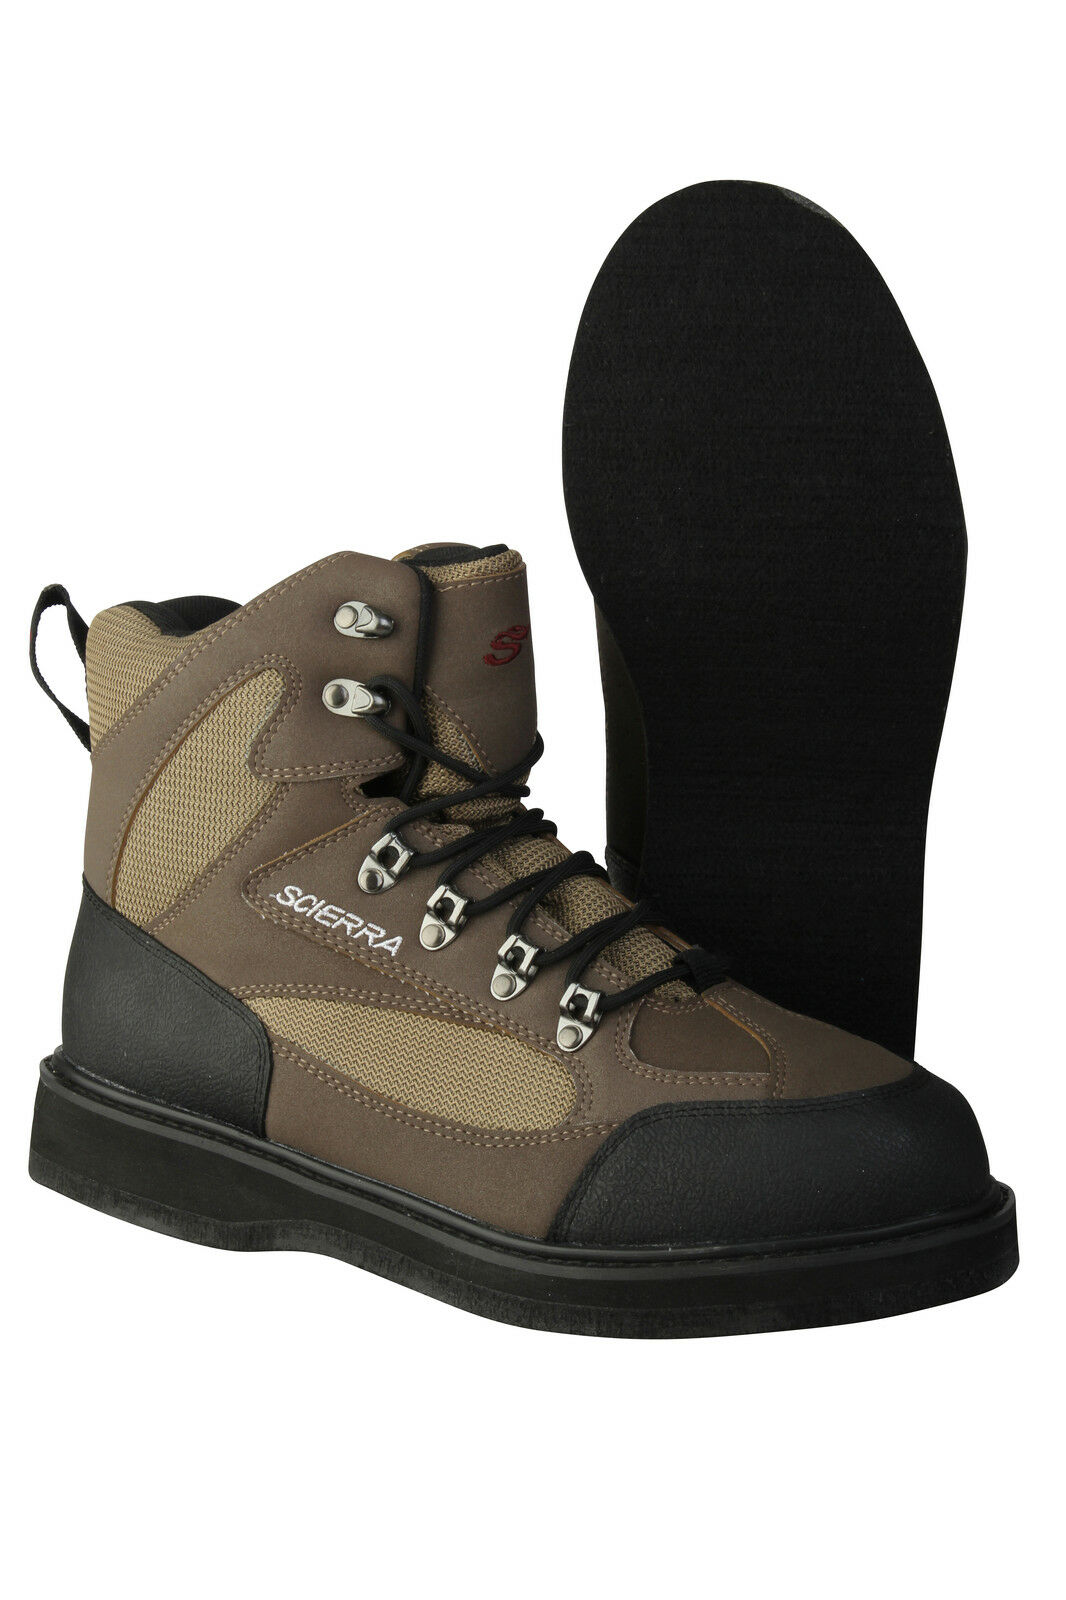 New Scierra CC3 XP Wading shoes With Felt Sole All Size's RRP